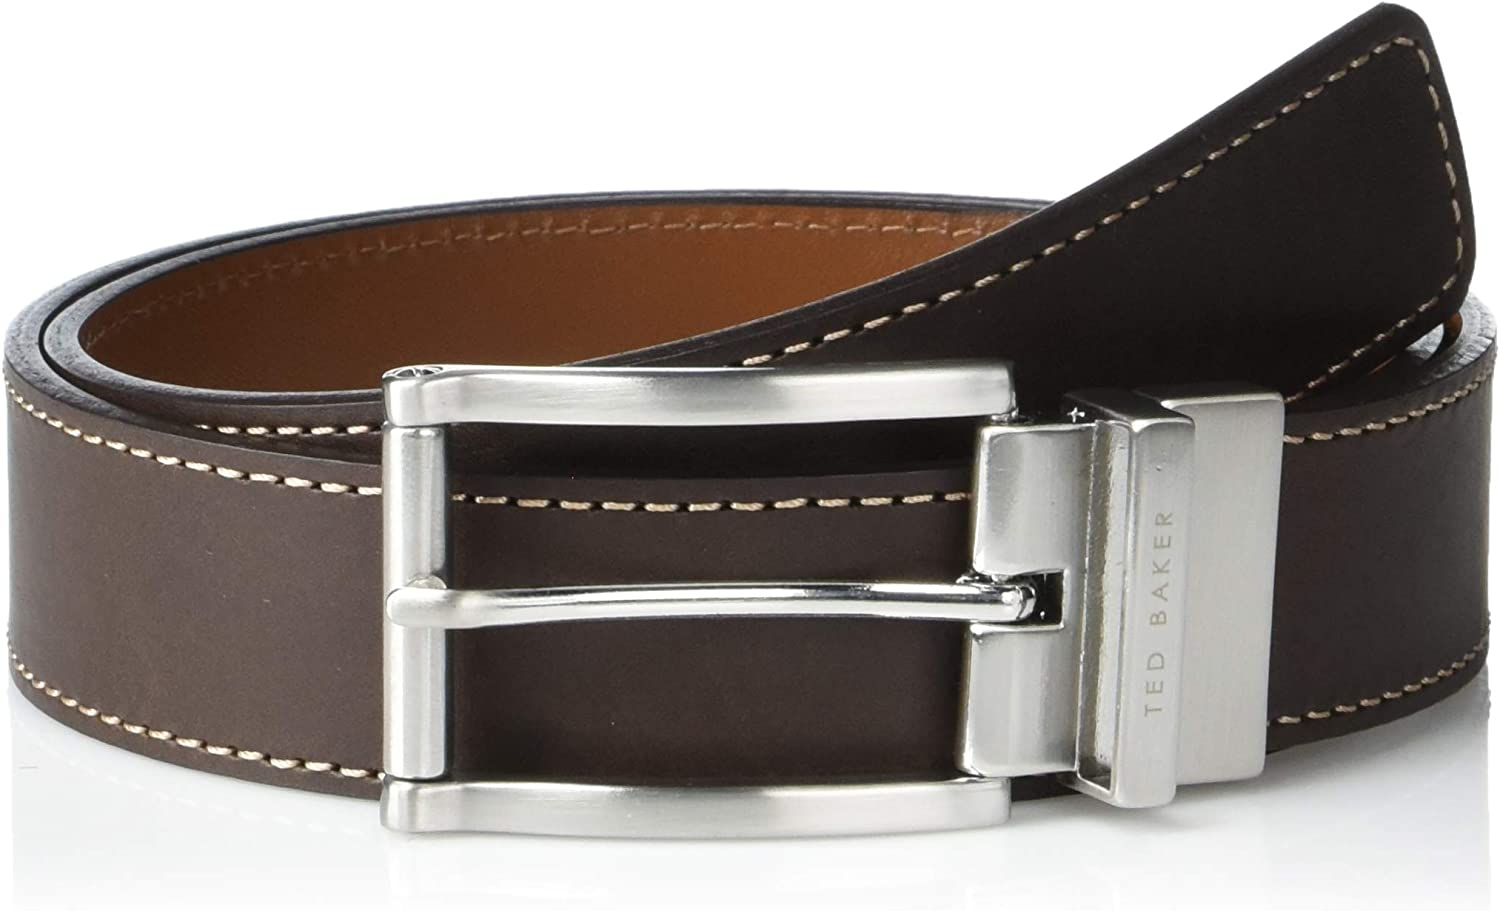 Ted Baker Bream Reversible Belt Brown: Amazon.co.uk: Clothing